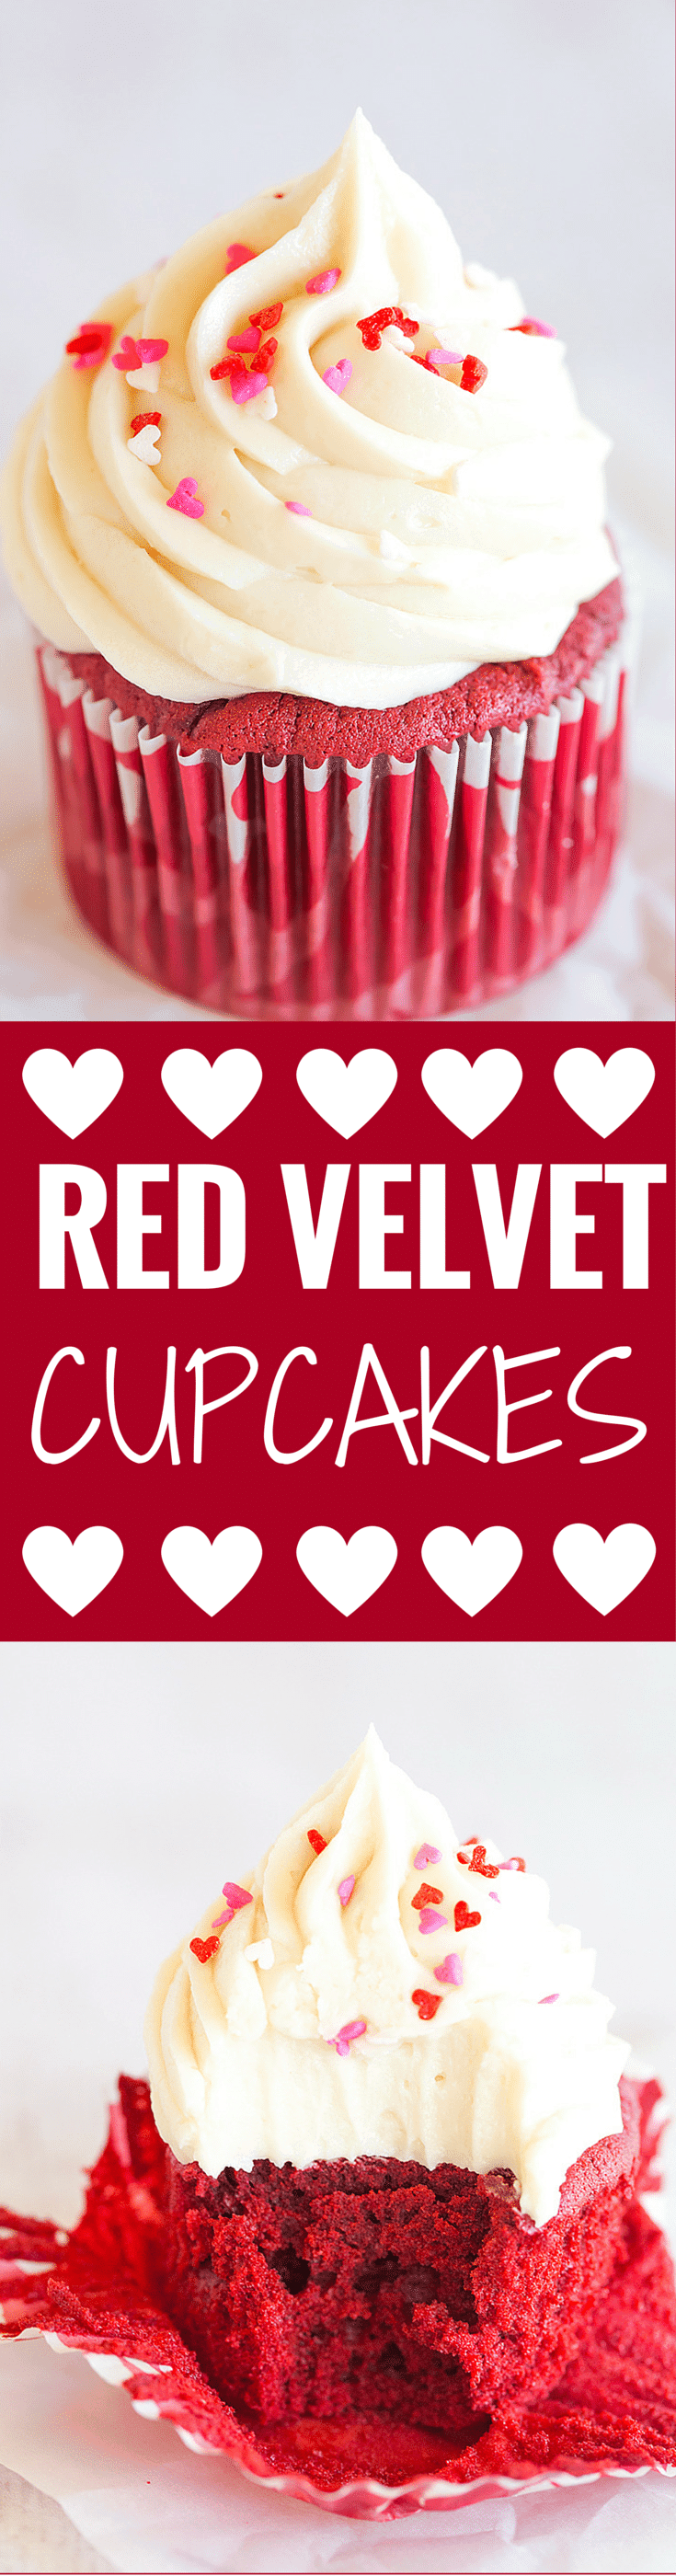 Red Velvet Cupcakes With Cream Cheese Frosting Brown